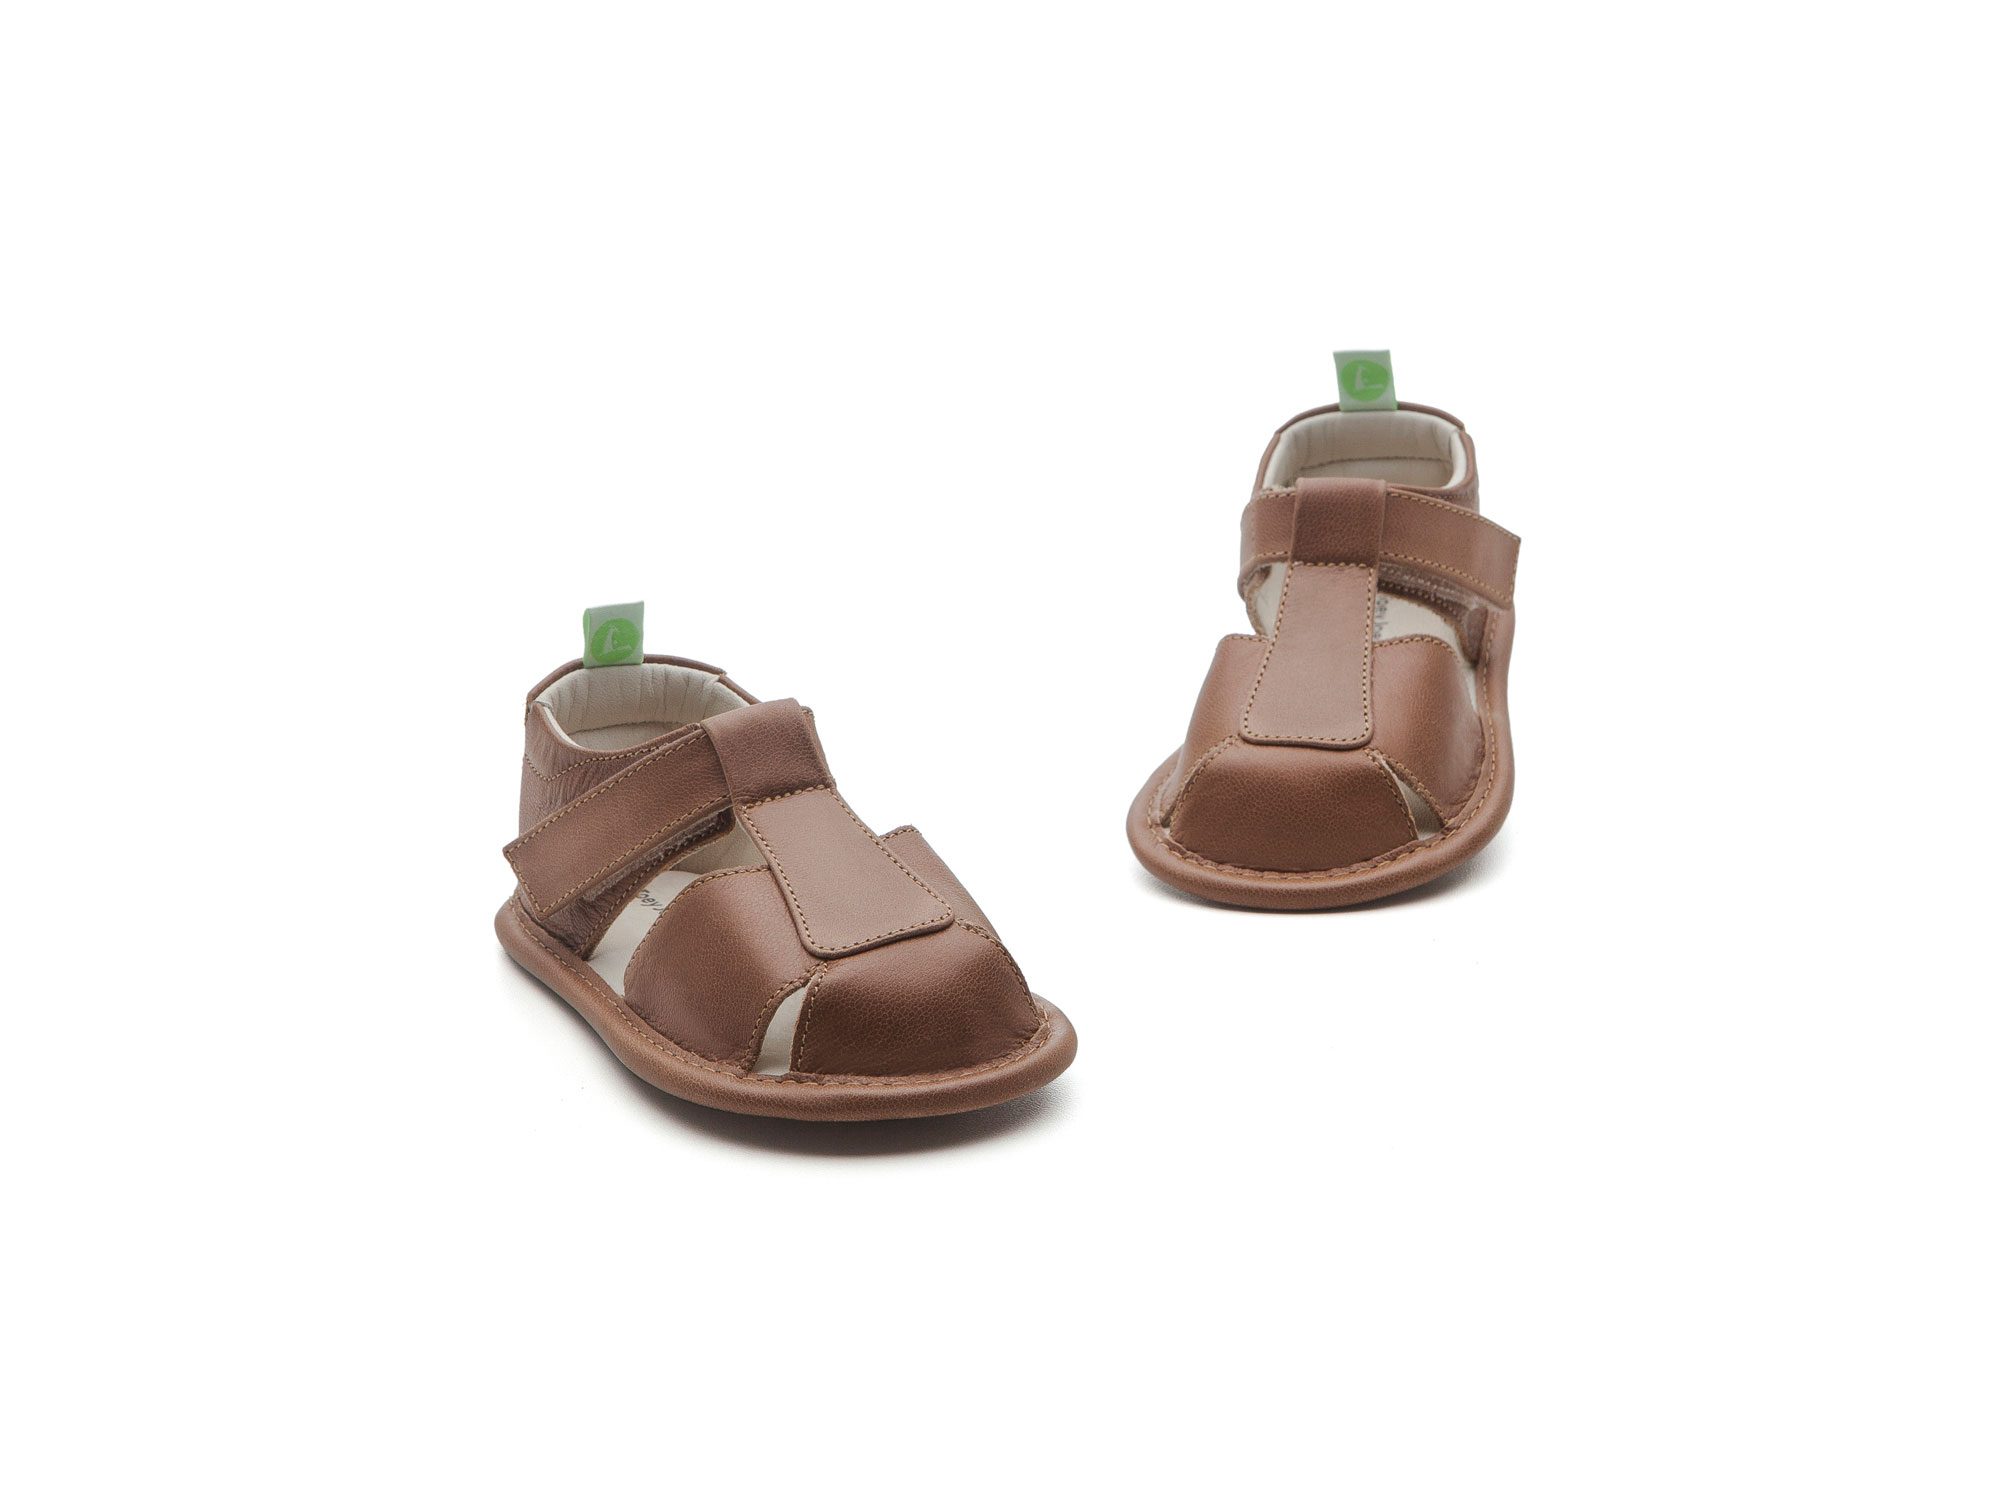 Sandal Parky Whisky  Baby for ages 0 to 2 years - 1